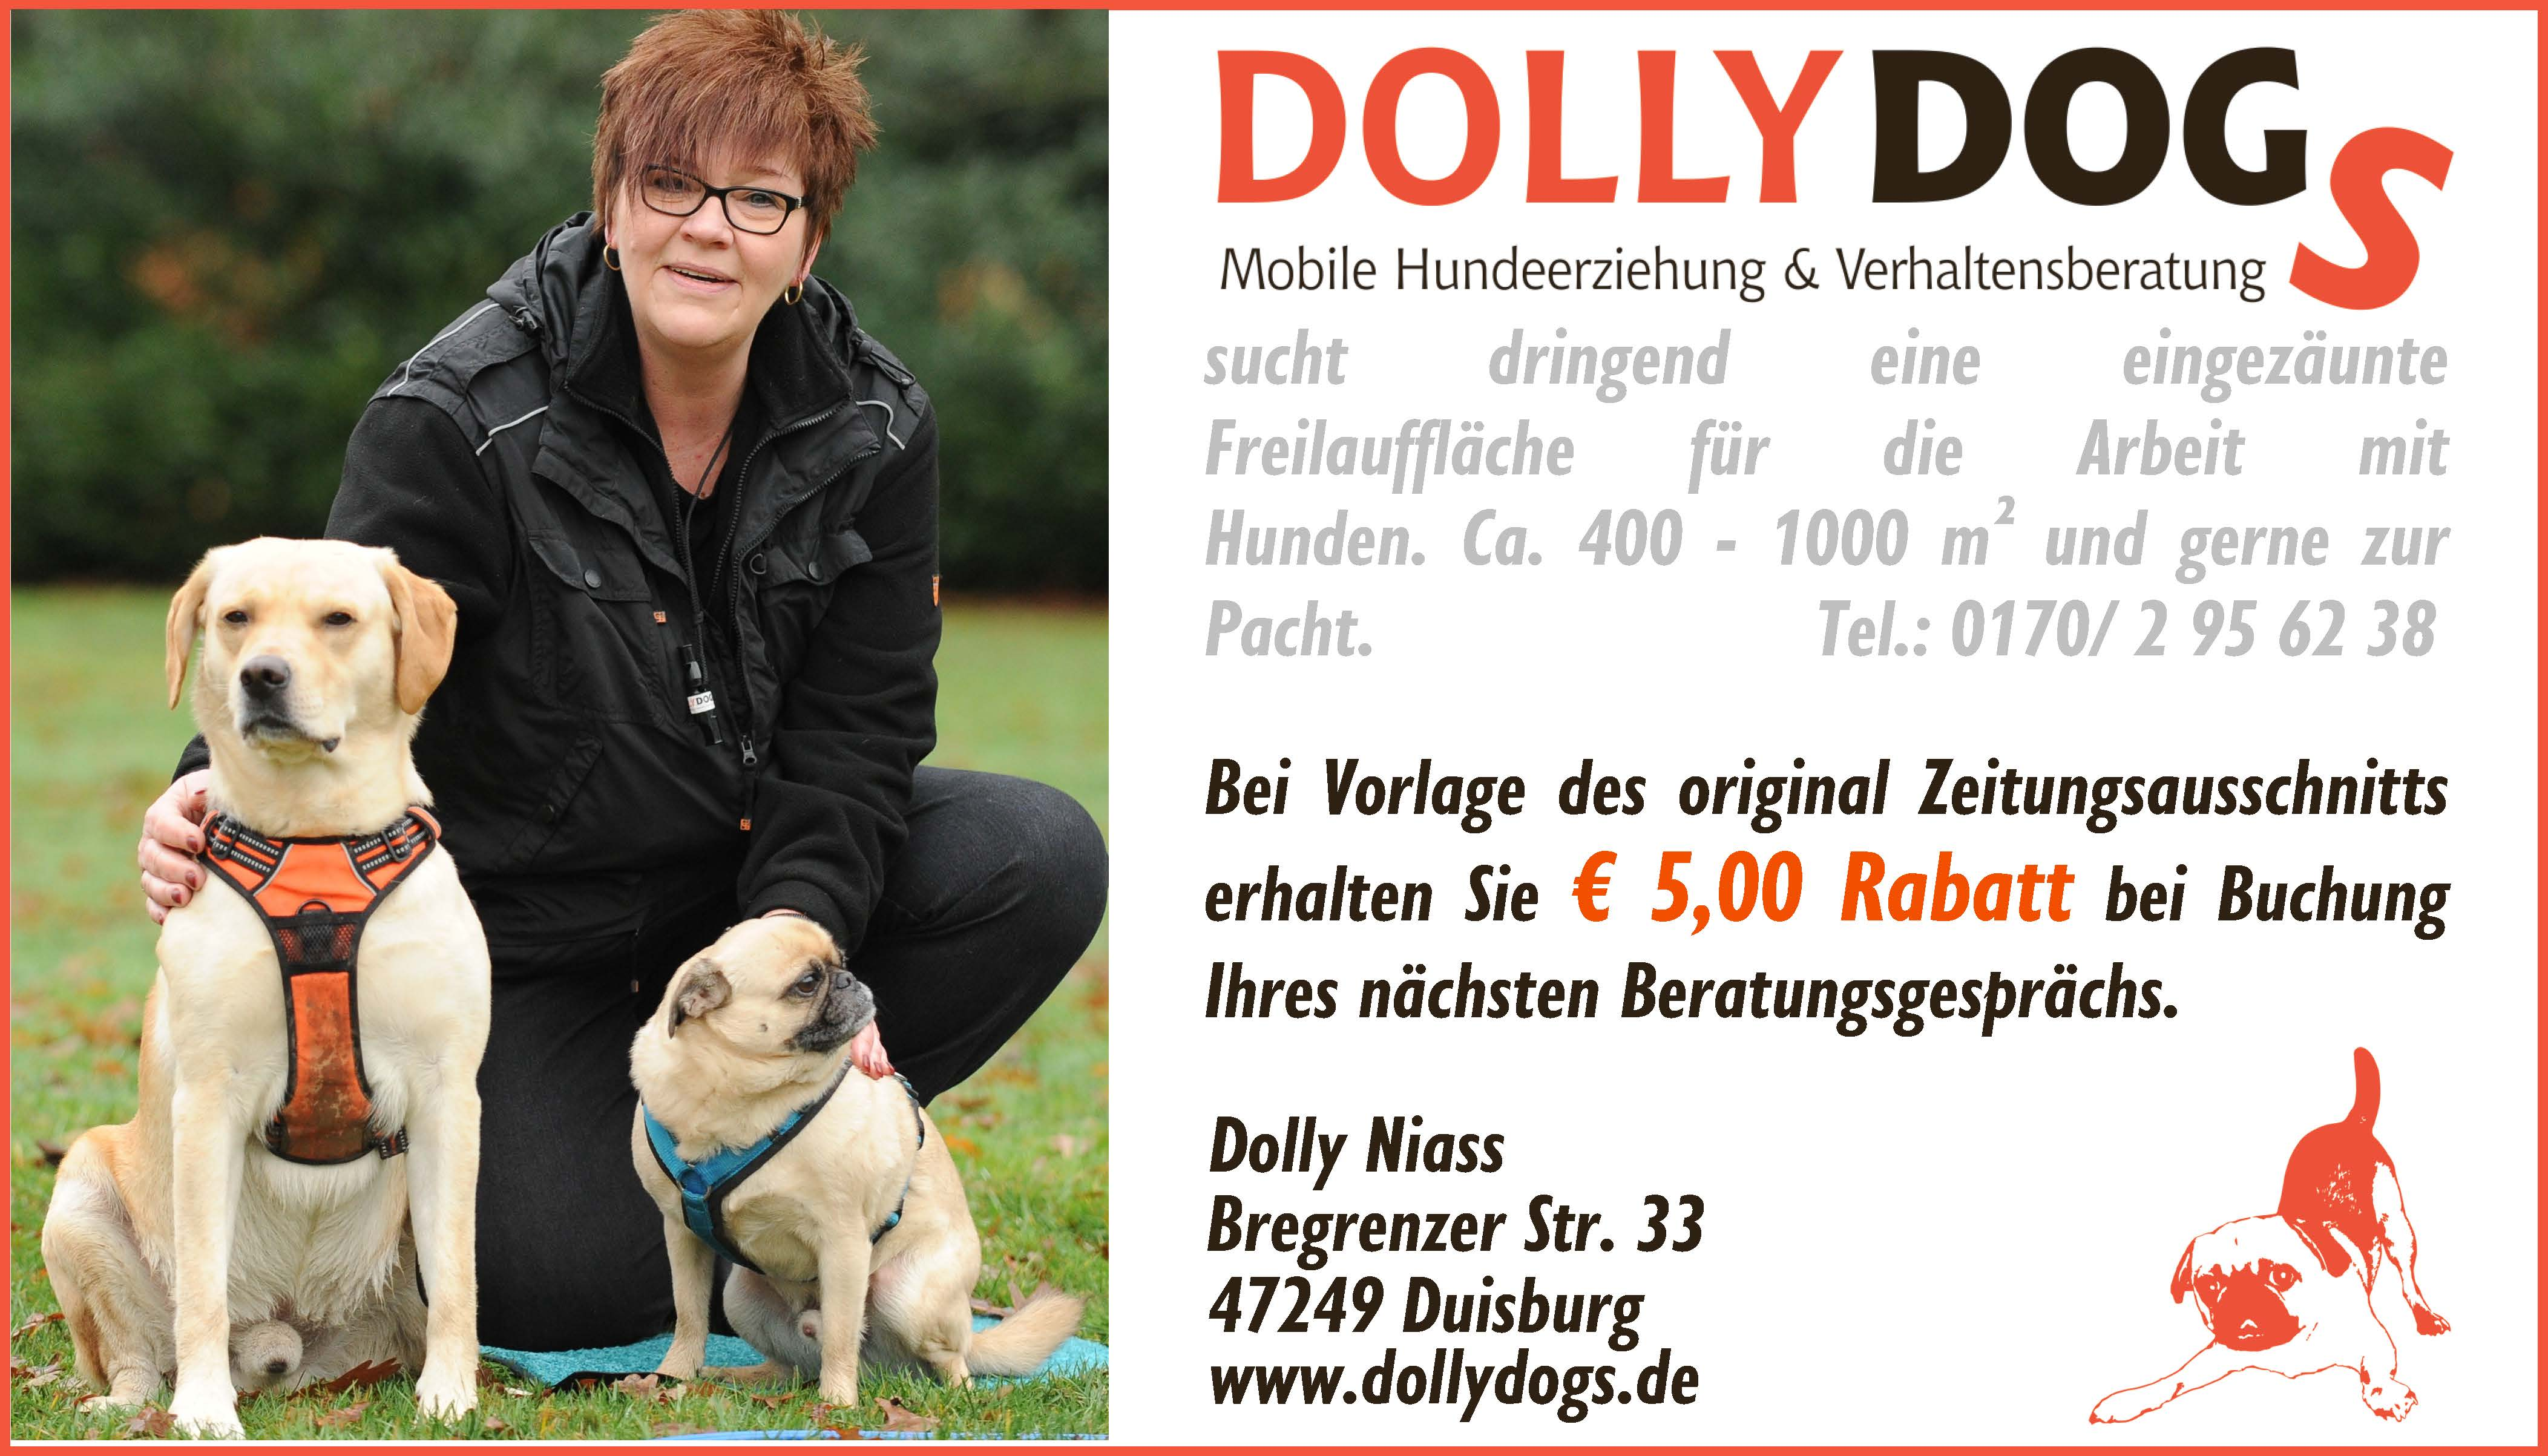 DOLLY DOGS